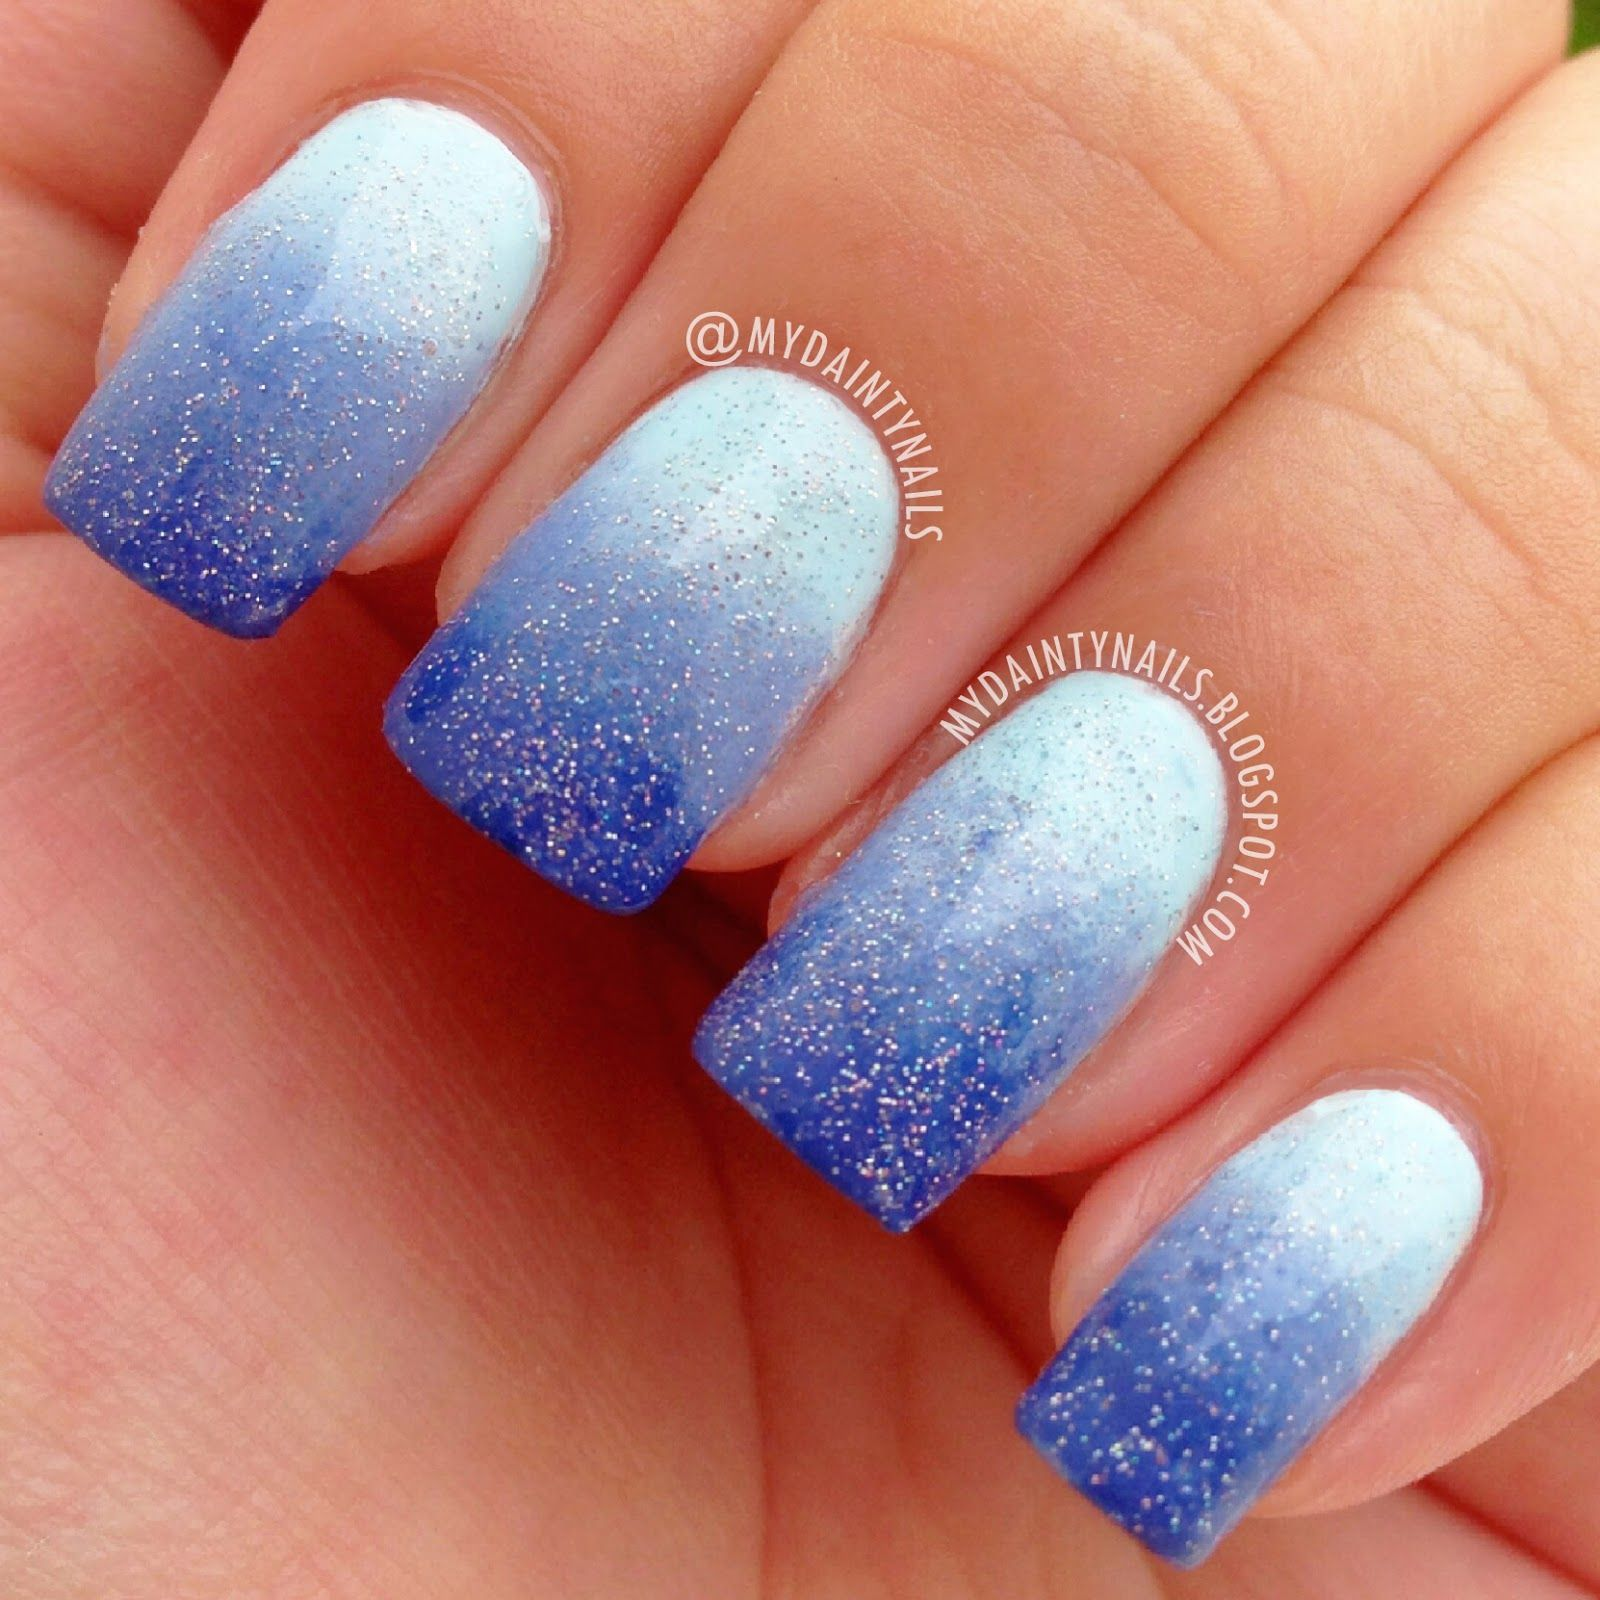 dainty nails: blue gradient/ombre nails | marie's pin picks